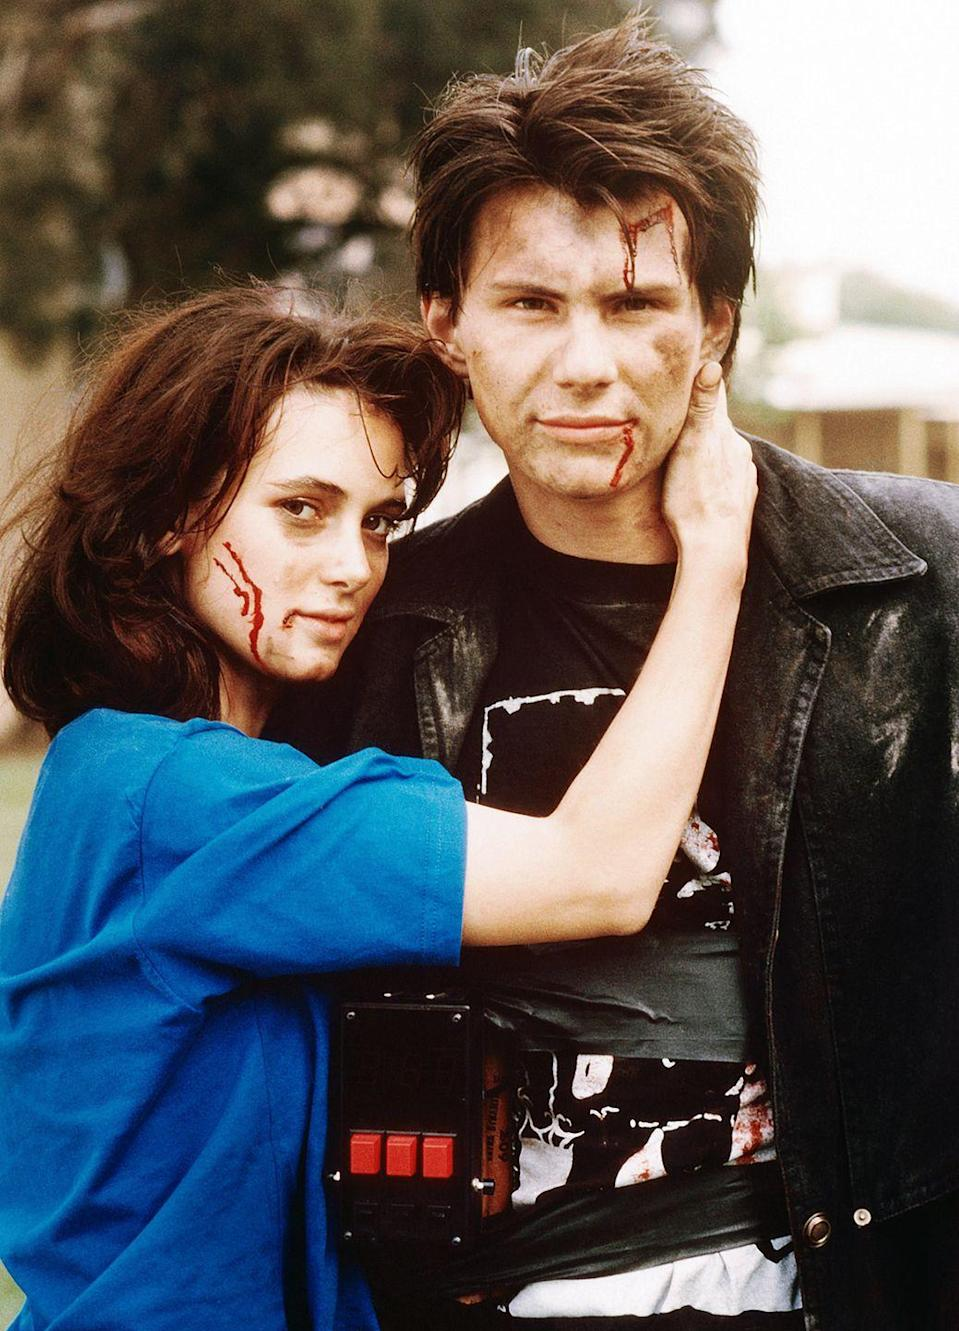 <p>Winona Ryder stars as the whip-smart Veronica Sawyer, a popular girl who hates her best friends (a trio of queen bees, all named Heather). Her life spins out of control when she falls for the new kid at school—the trench coat-wearing, gun-toting J.D., played by Christian Slater—who convinces her to kill off her clique</p>